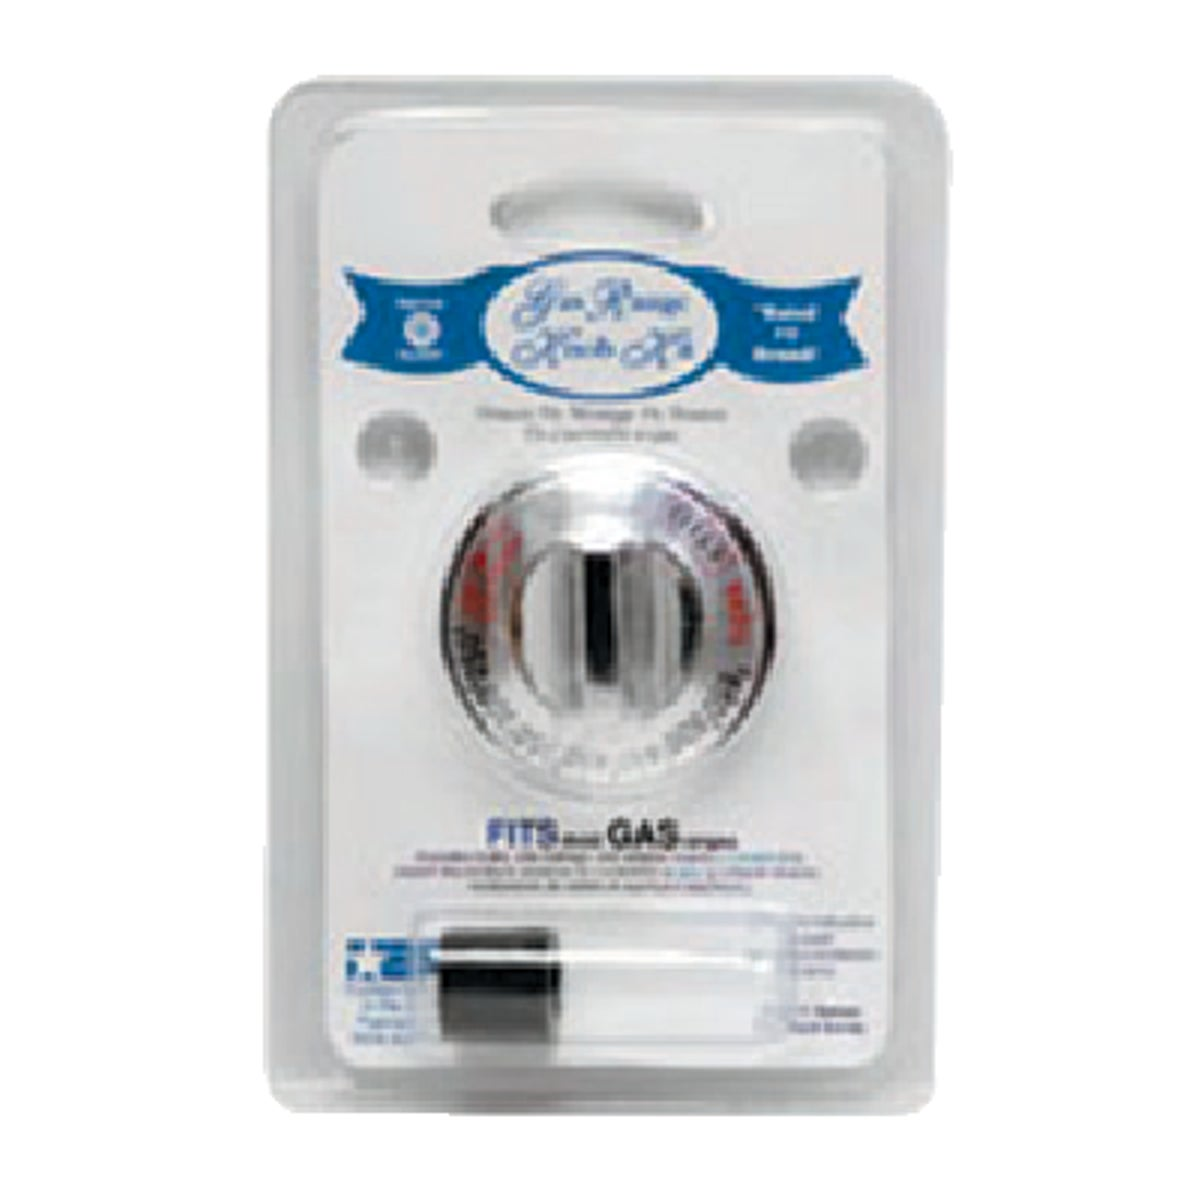 CHROME GAS KNOB - 8221 by Range Kleen Mfg Inc